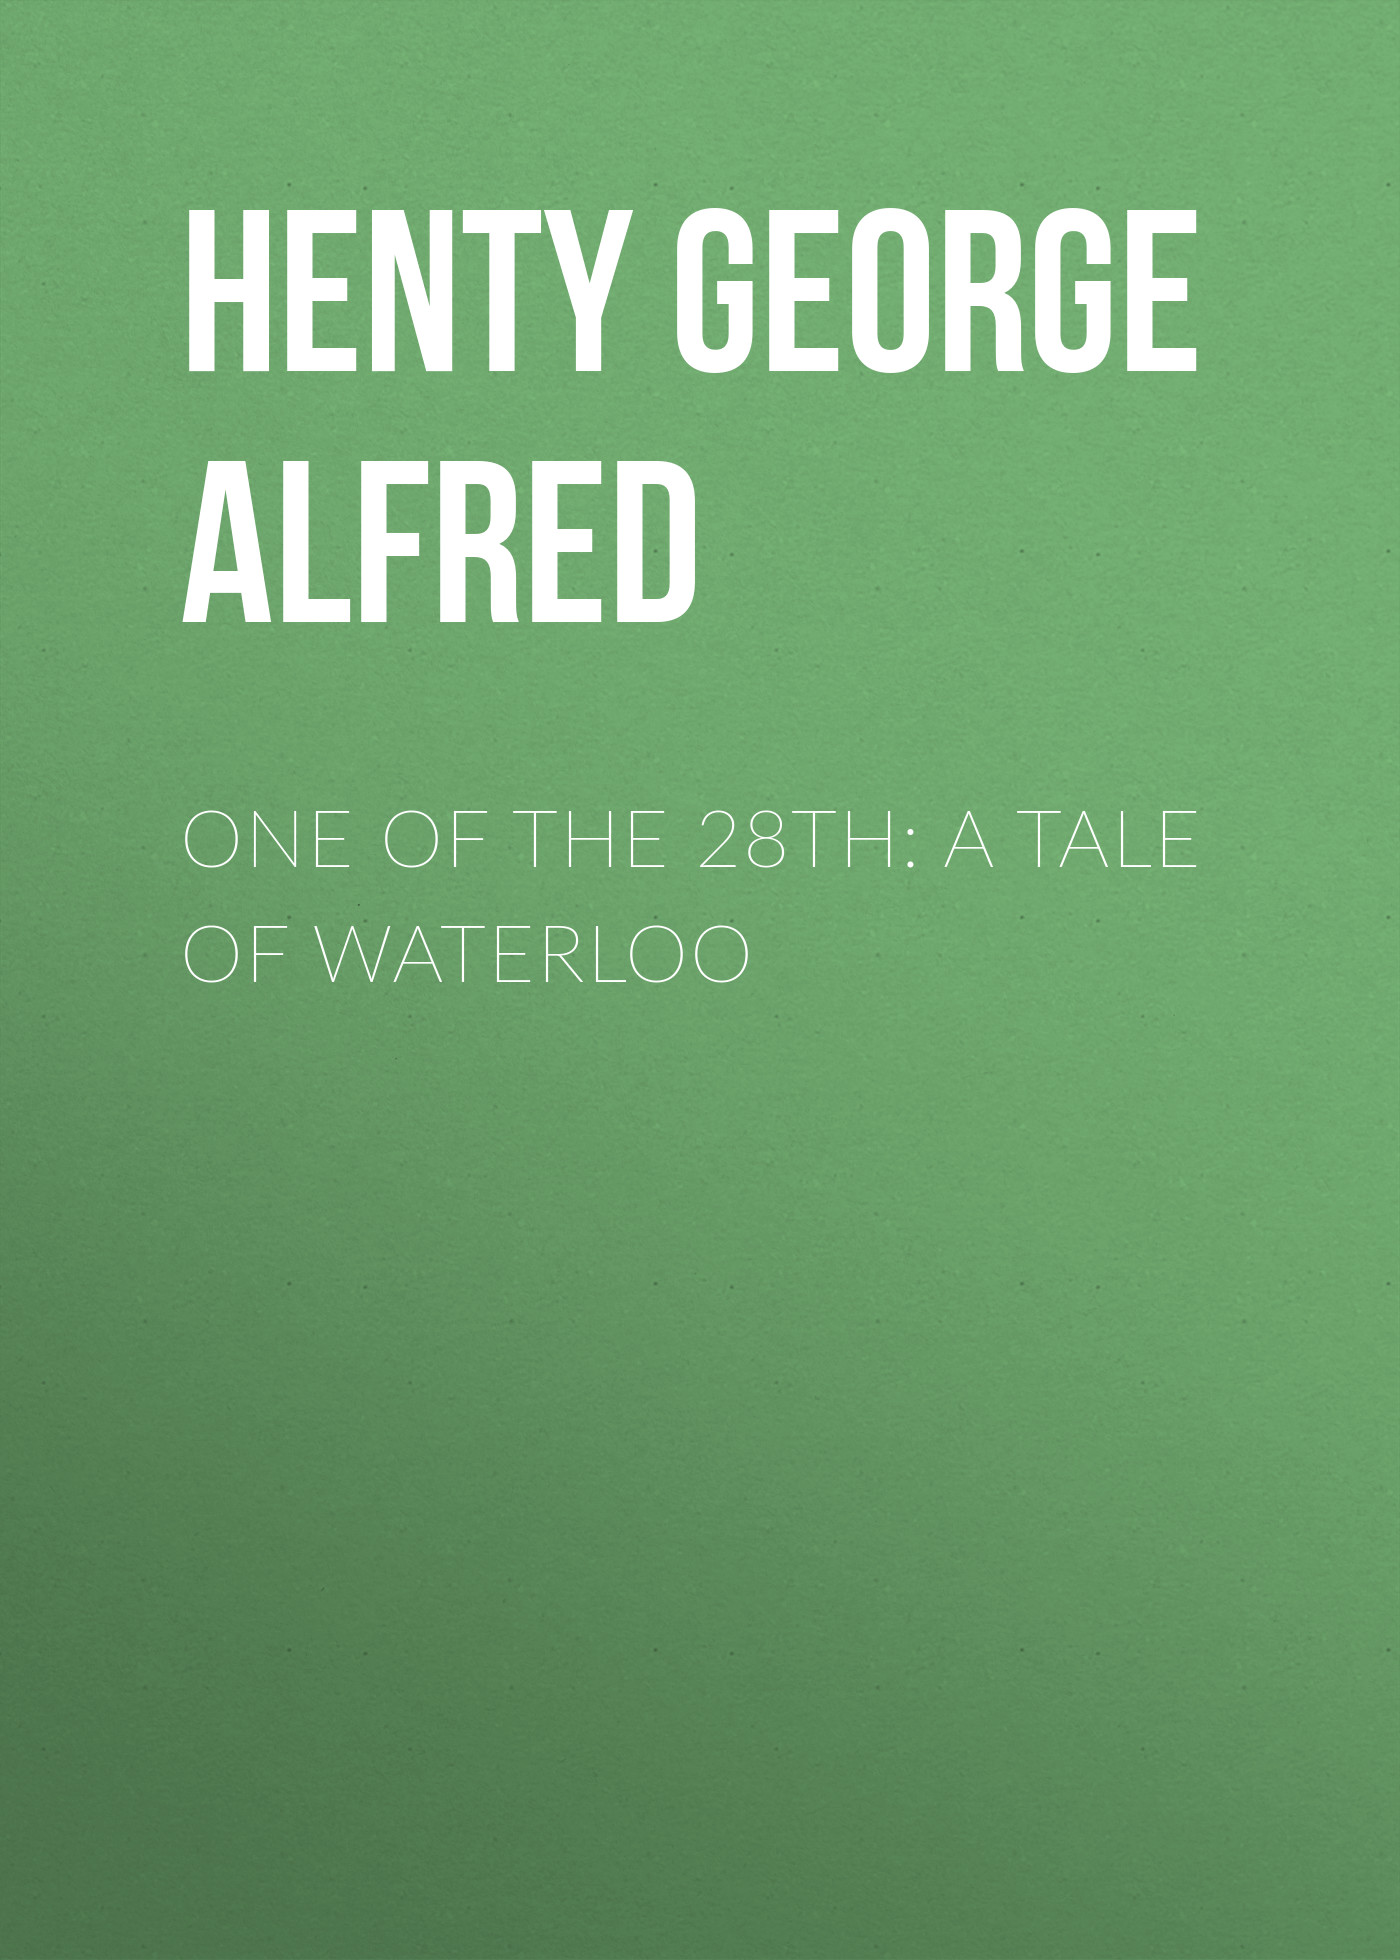 Henty George Alfred One of the 28th: A Tale of Waterloo